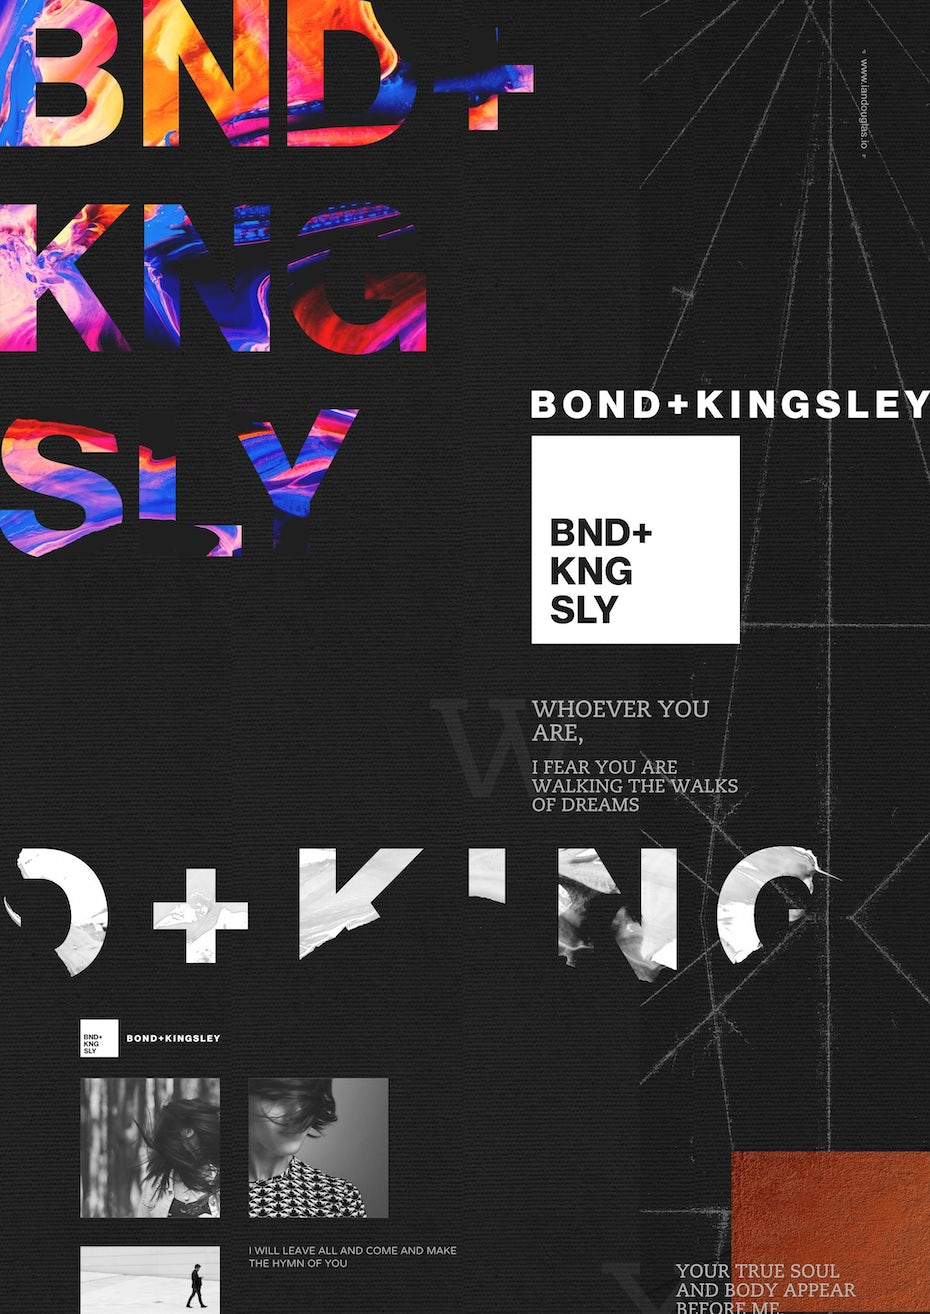 Bond + Kingsley branding